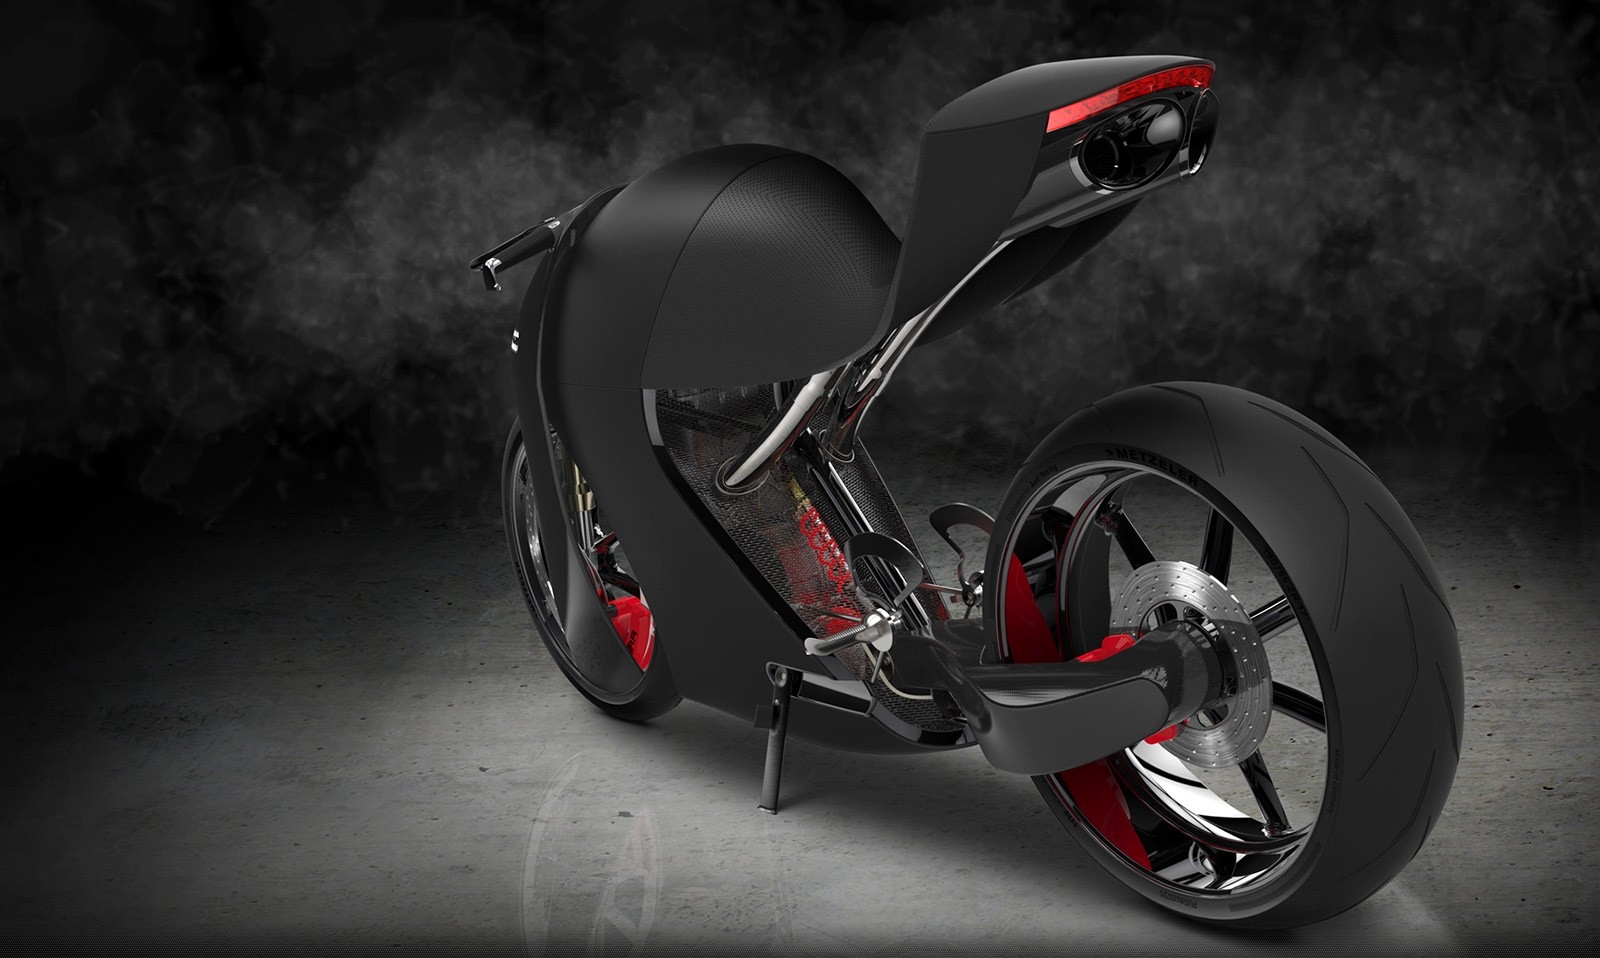 Audi Rr Concept Bike The Hybrid Superbike